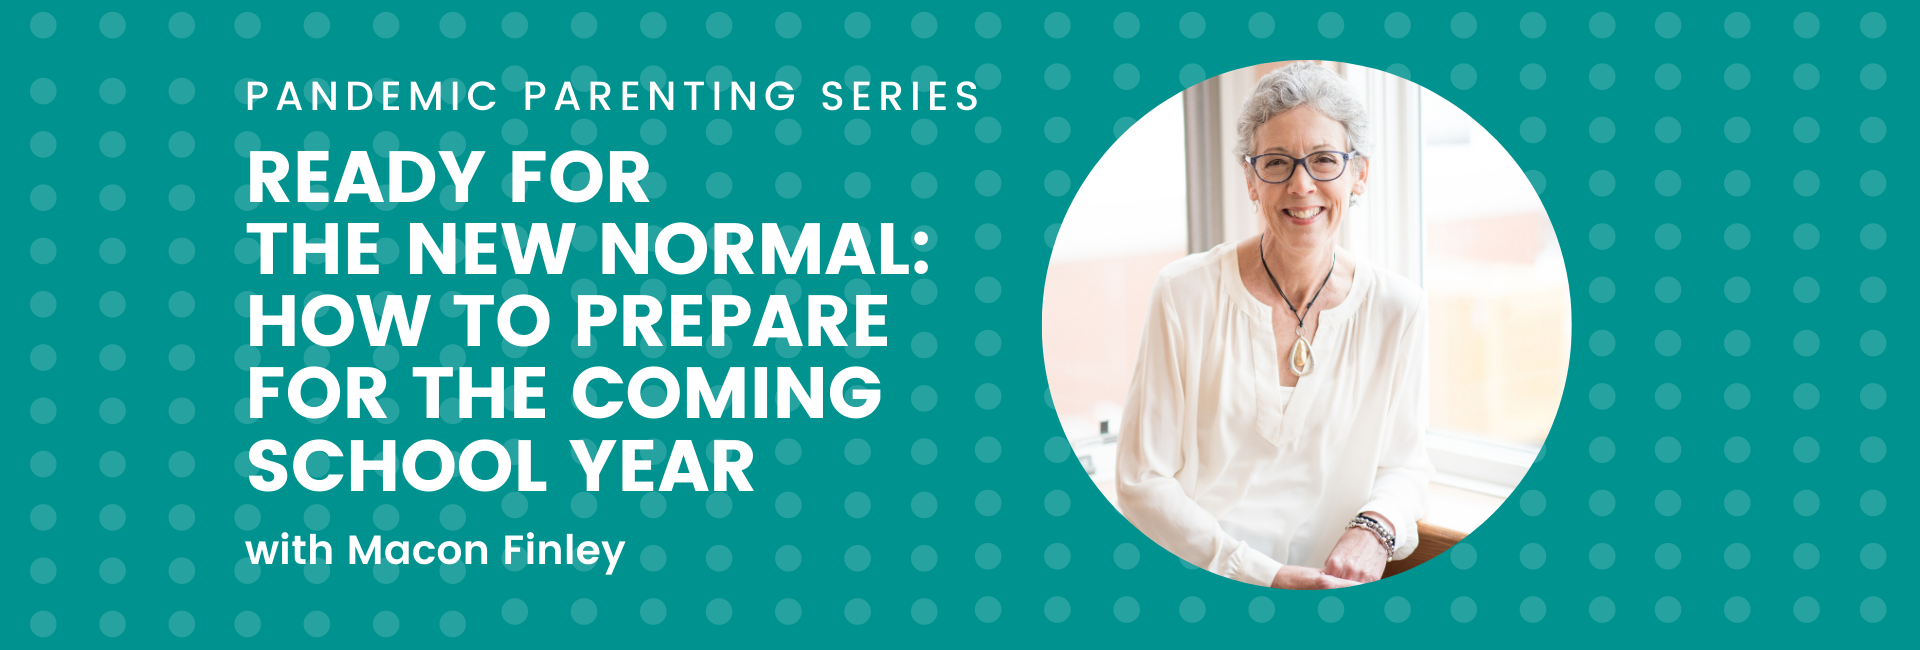 Ready for the New Normal: How to Prepare for the Coming School Year